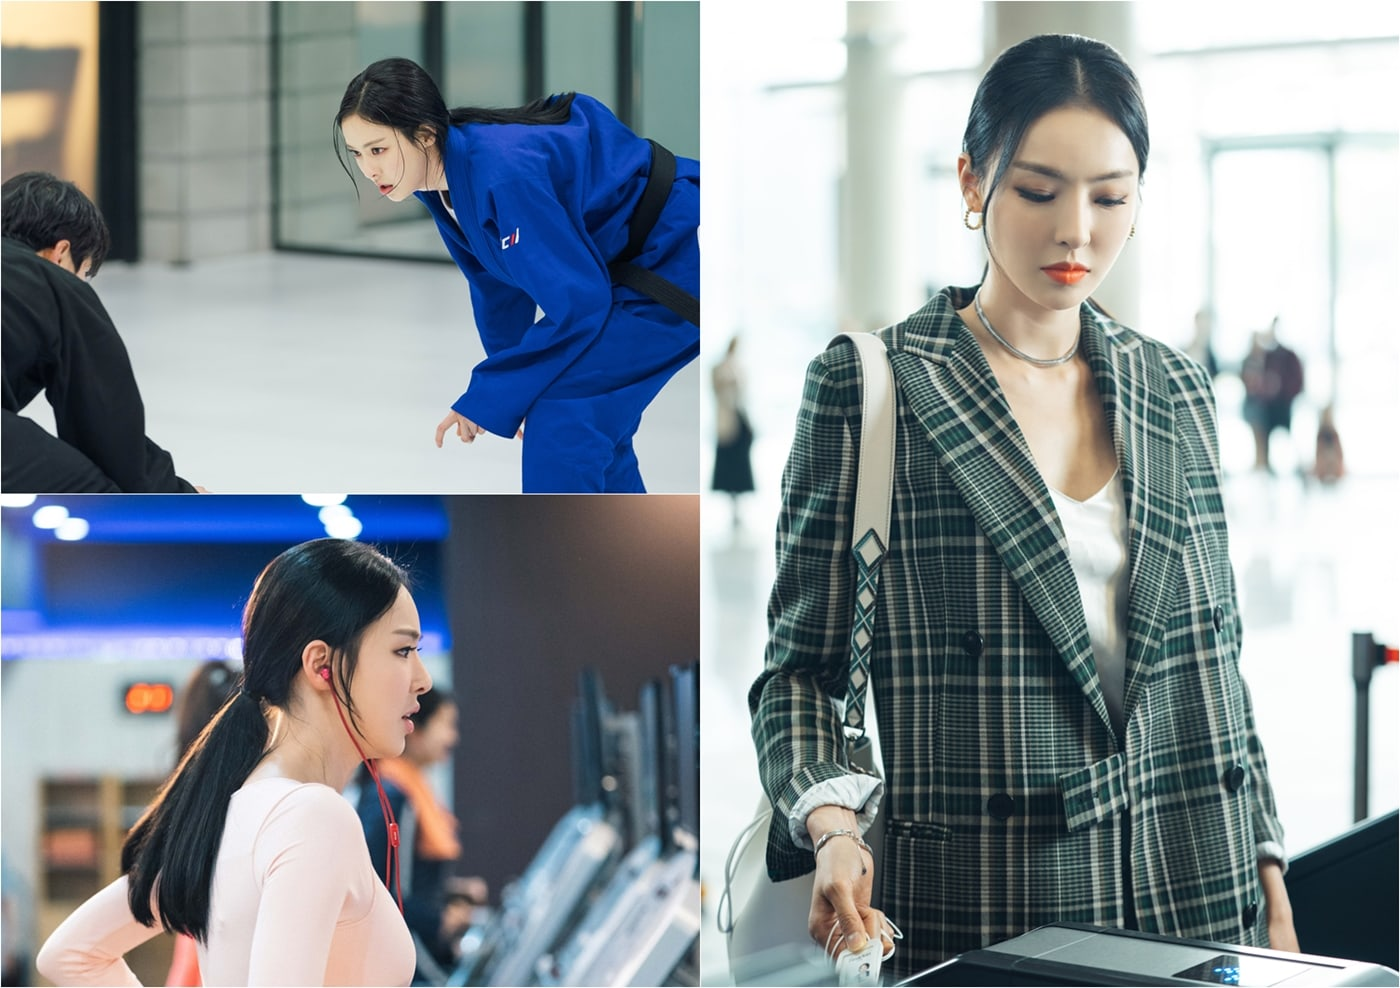 lee-da-hee-makes-fans-suprise-by-mastering-difficult-yoga-poses-1